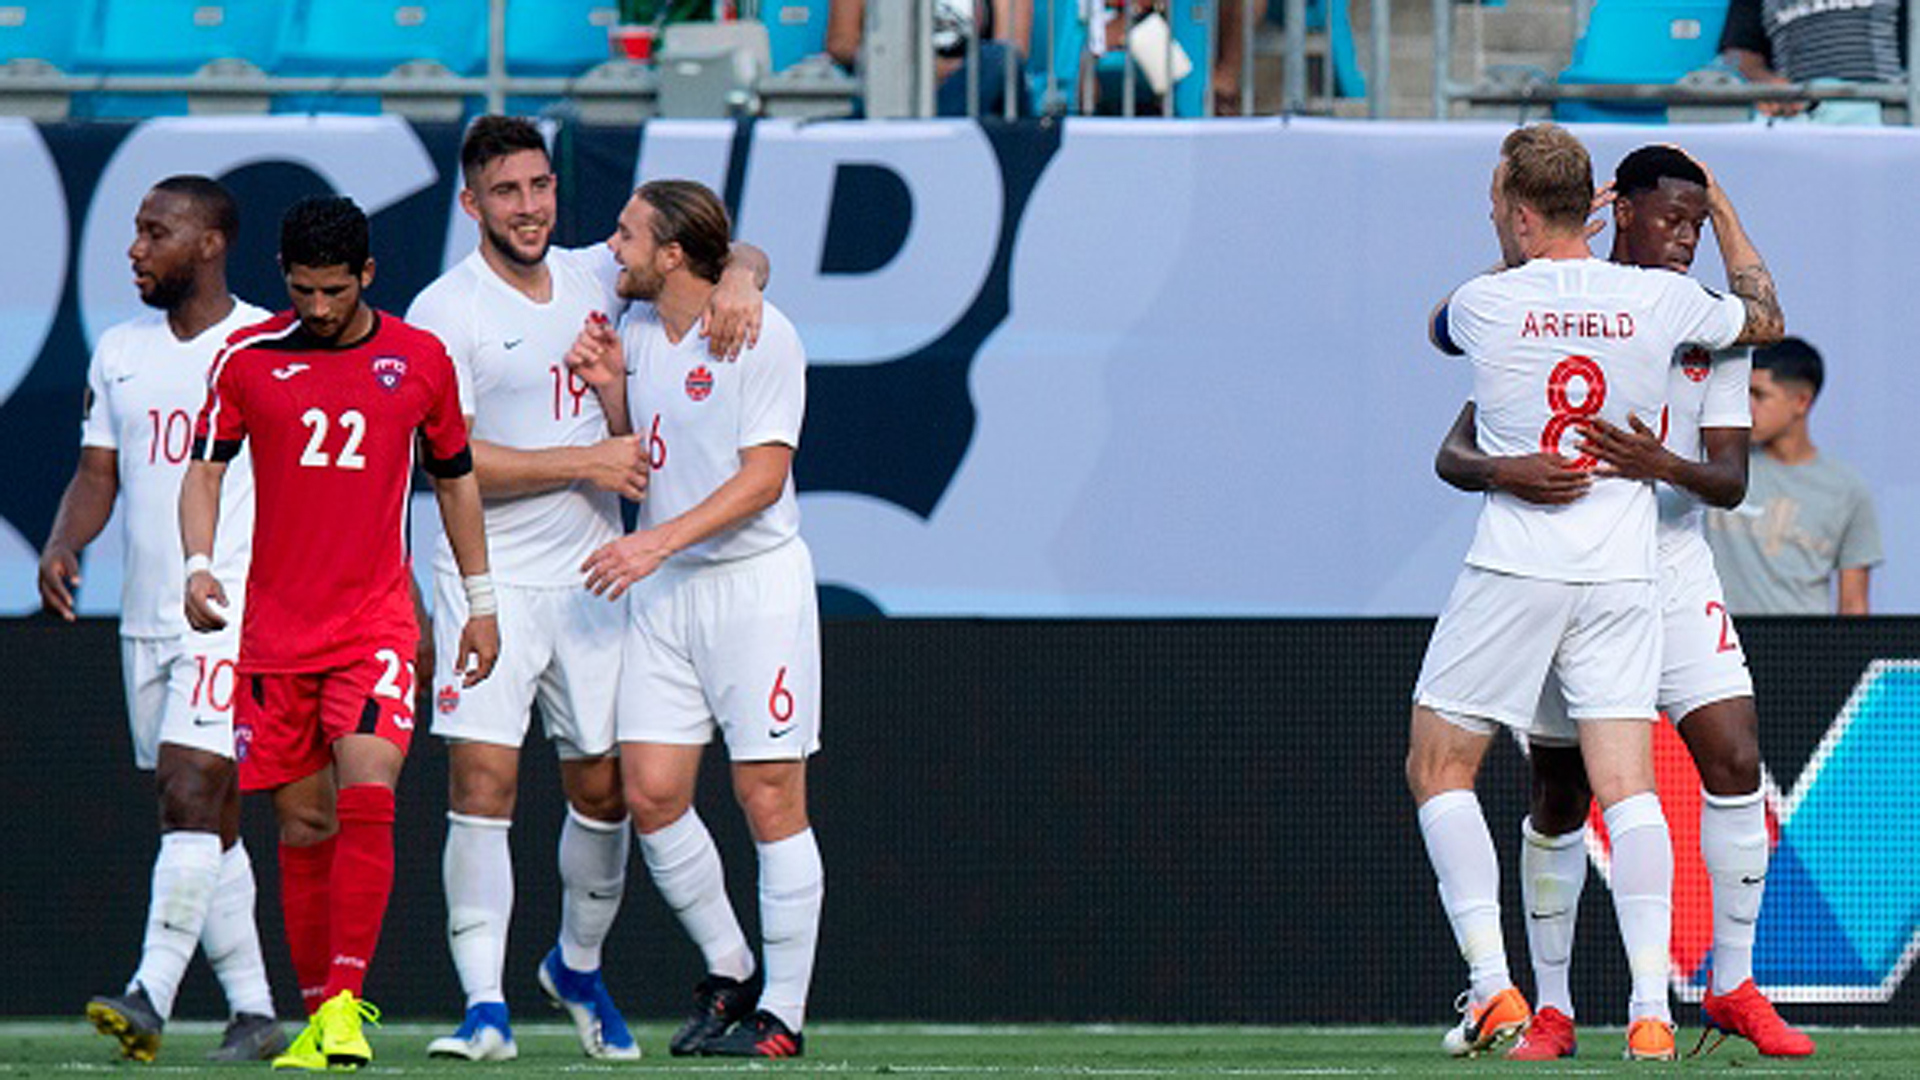 'They're dismantling teams': Canada dominates Cuba ahead of Gold Cup QFs